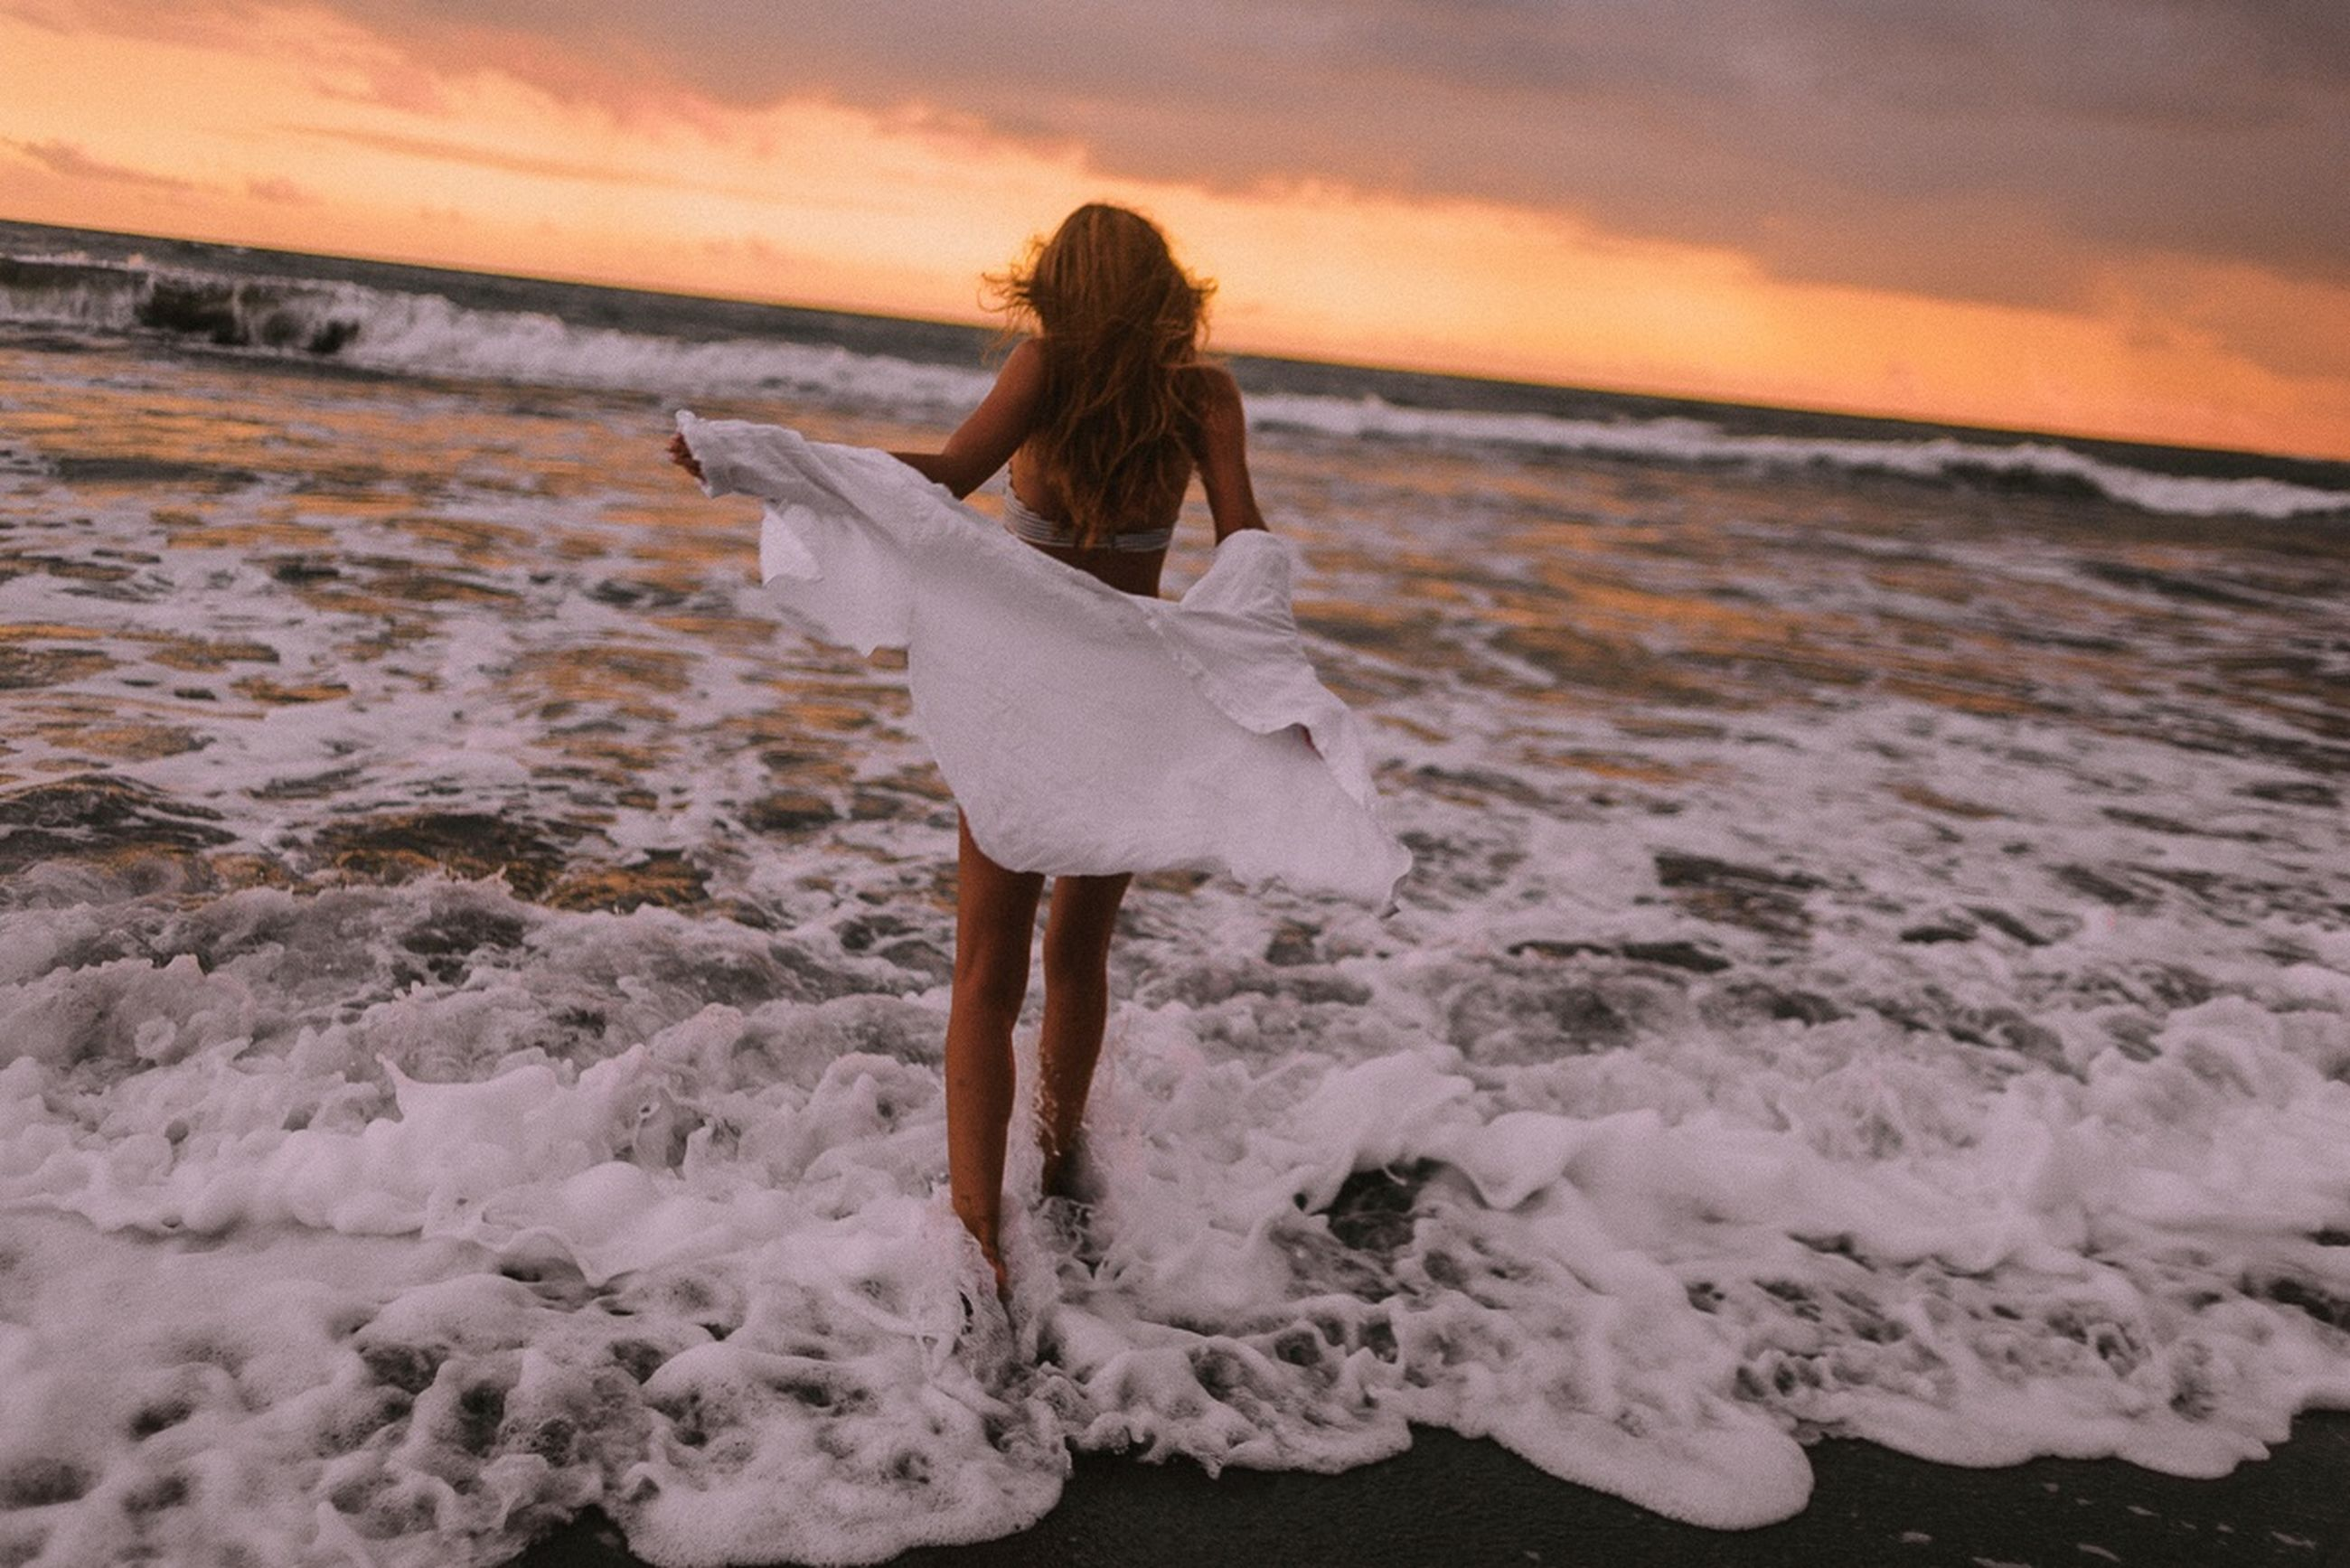 sea, sunset, water, beach, land, sky, leisure activity, motion, horizon, horizon over water, one person, beauty in nature, women, lifestyles, wave, real people, surfing, scenics - nature, aquatic sport, hairstyle, hair, outdoors